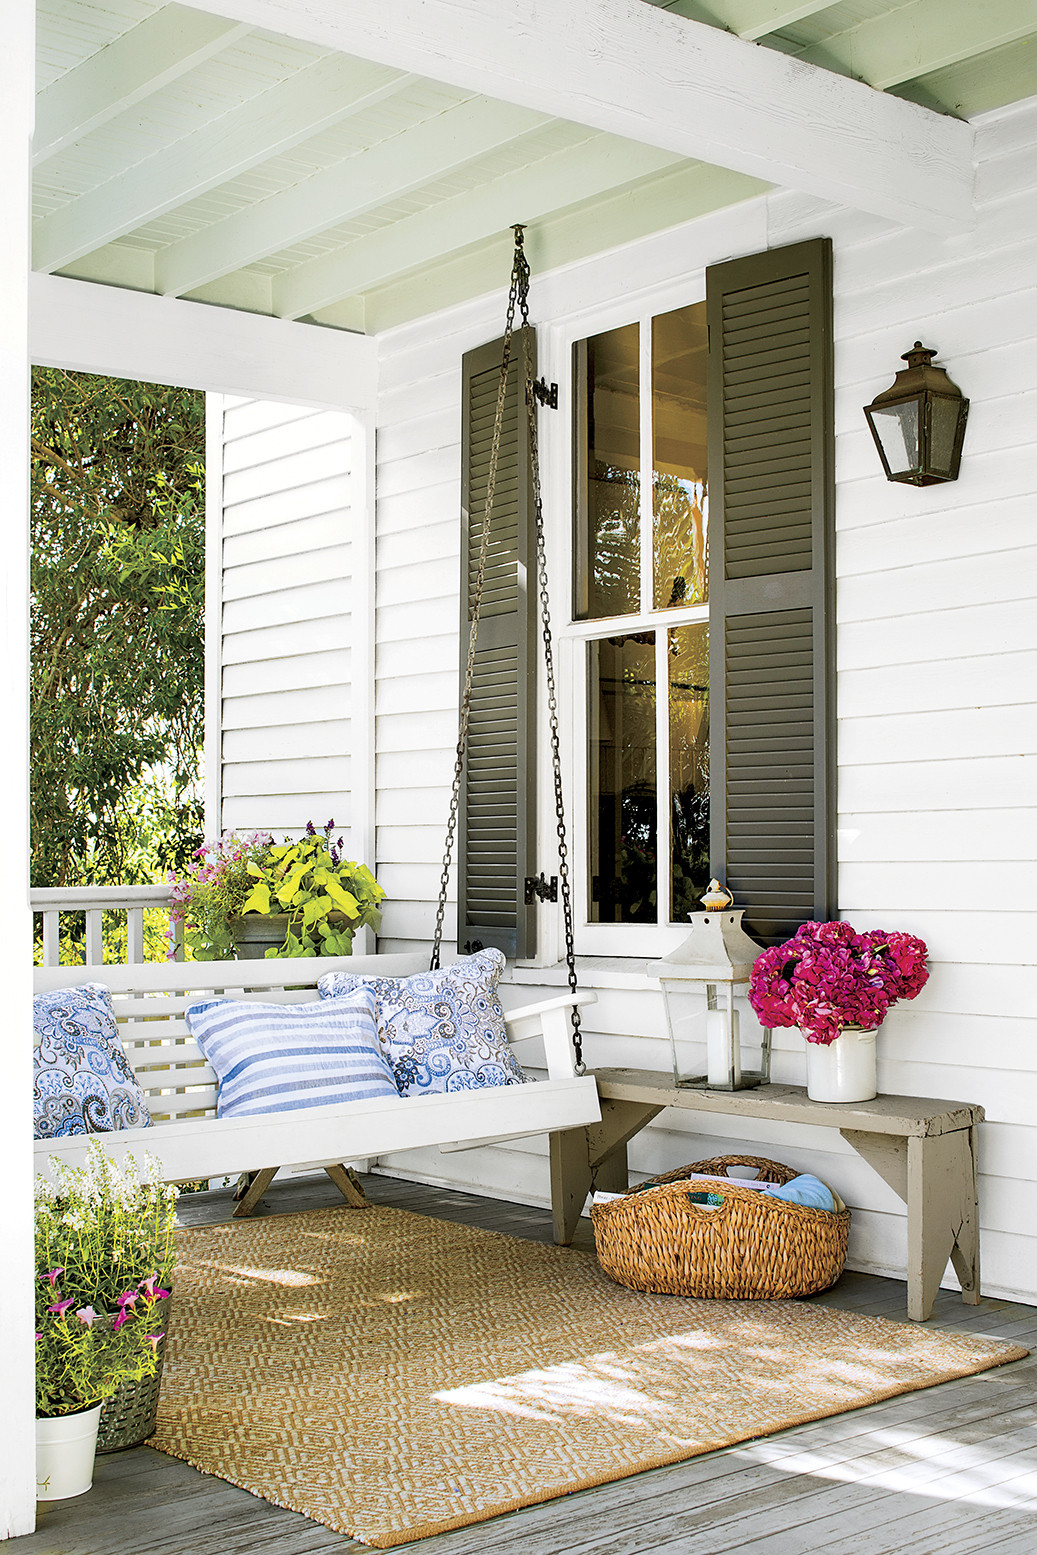 Calming porch setting with a white swing